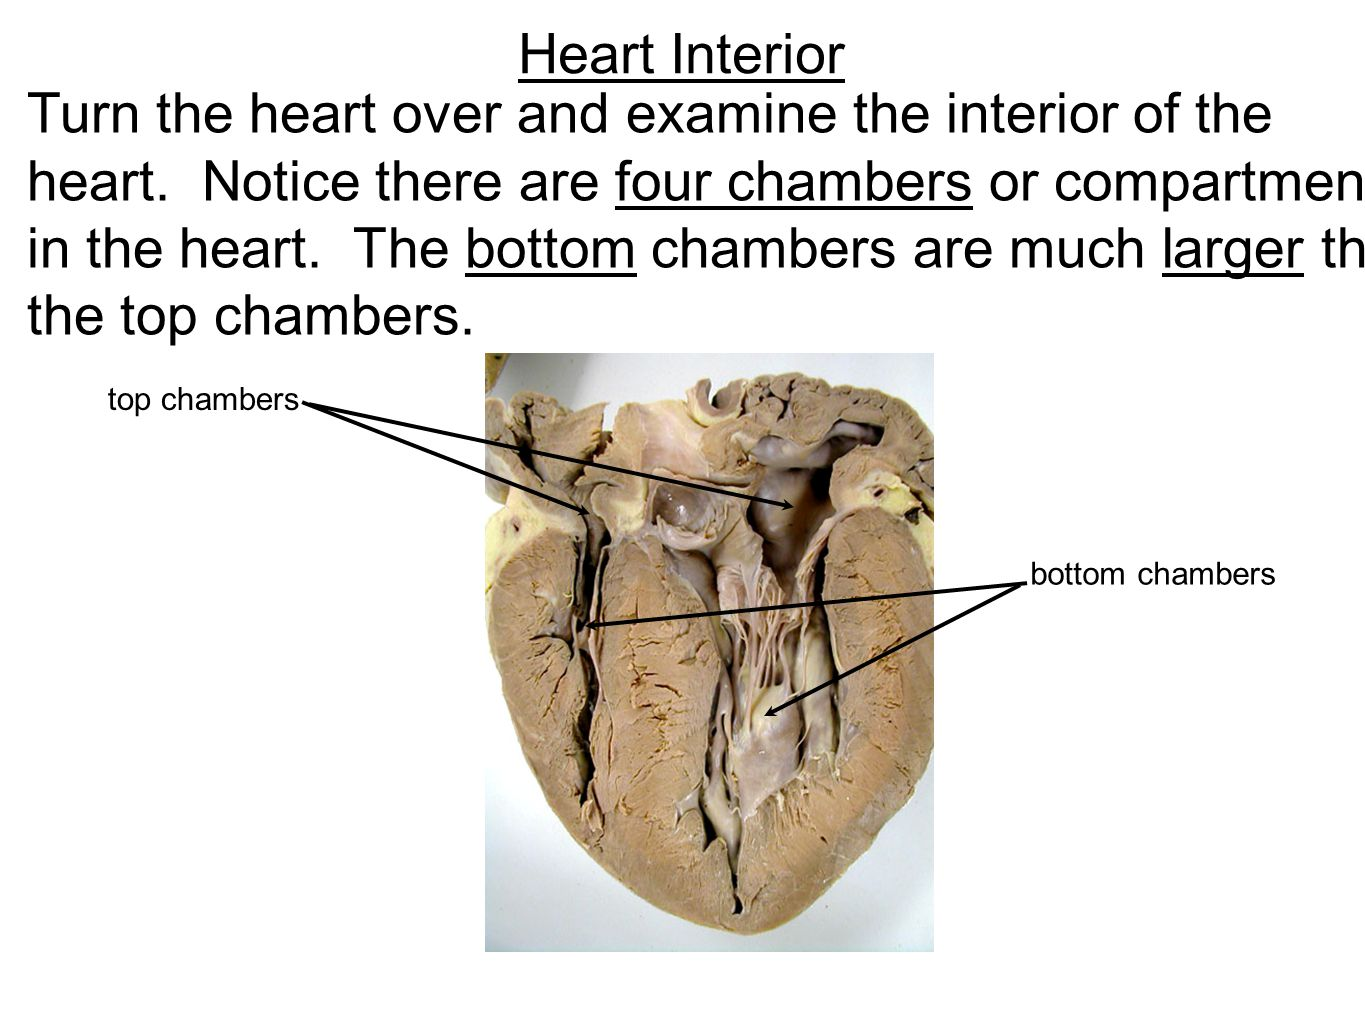 Turn the heart over and examine the interior of the